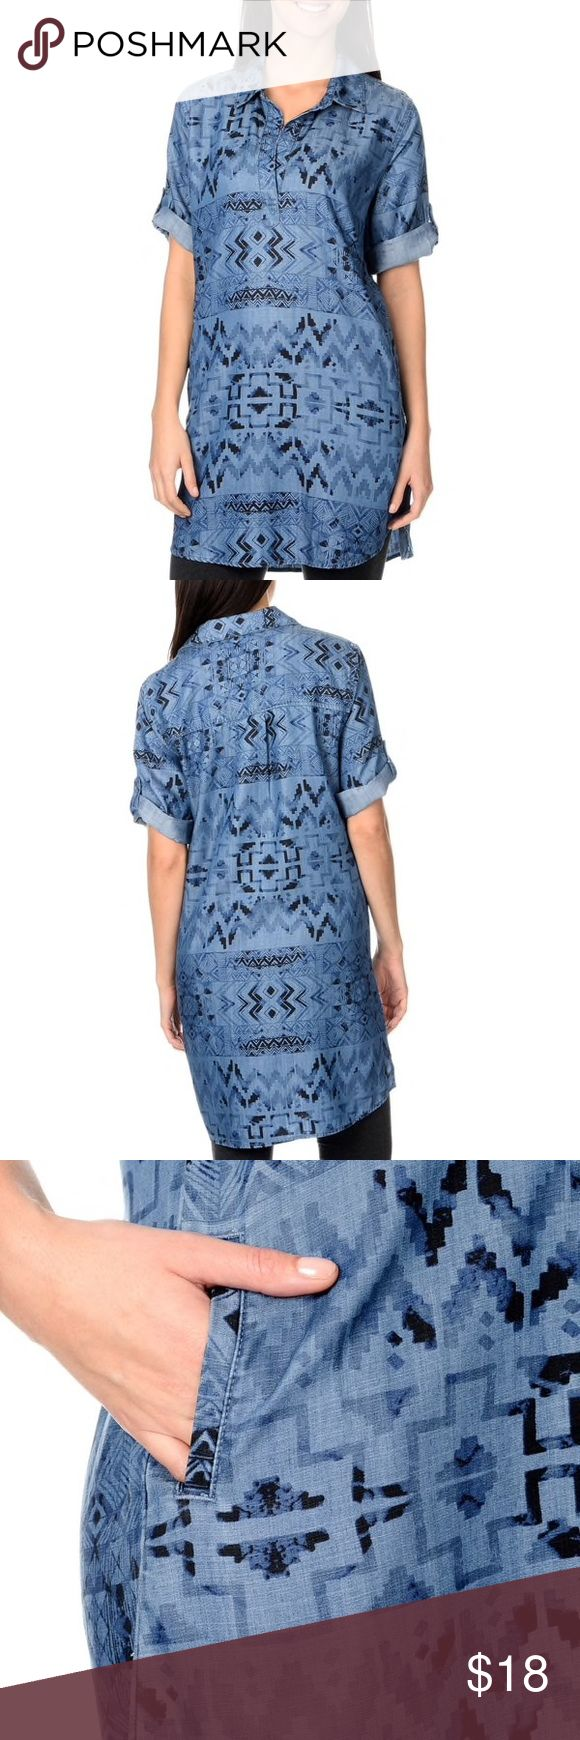 Aztec Denim Shirt Dress SUMMER SALE ☀️ Stylish and casual, this Aztec print shirt dress offers a comfortable fit and fun style. With a shirt collar, roll tab short sleeves, shirt tail hem, and two slit pockets, this shirt dress is perfect for everyday wear.   The approximate length from the top center back to the hem is 36 inches. The measurement was taken from a size M. This item is size S.  Materials: 100-percent Tencel Machine washable Model: 2890612 Chelsea & Theodore Dresses Mini